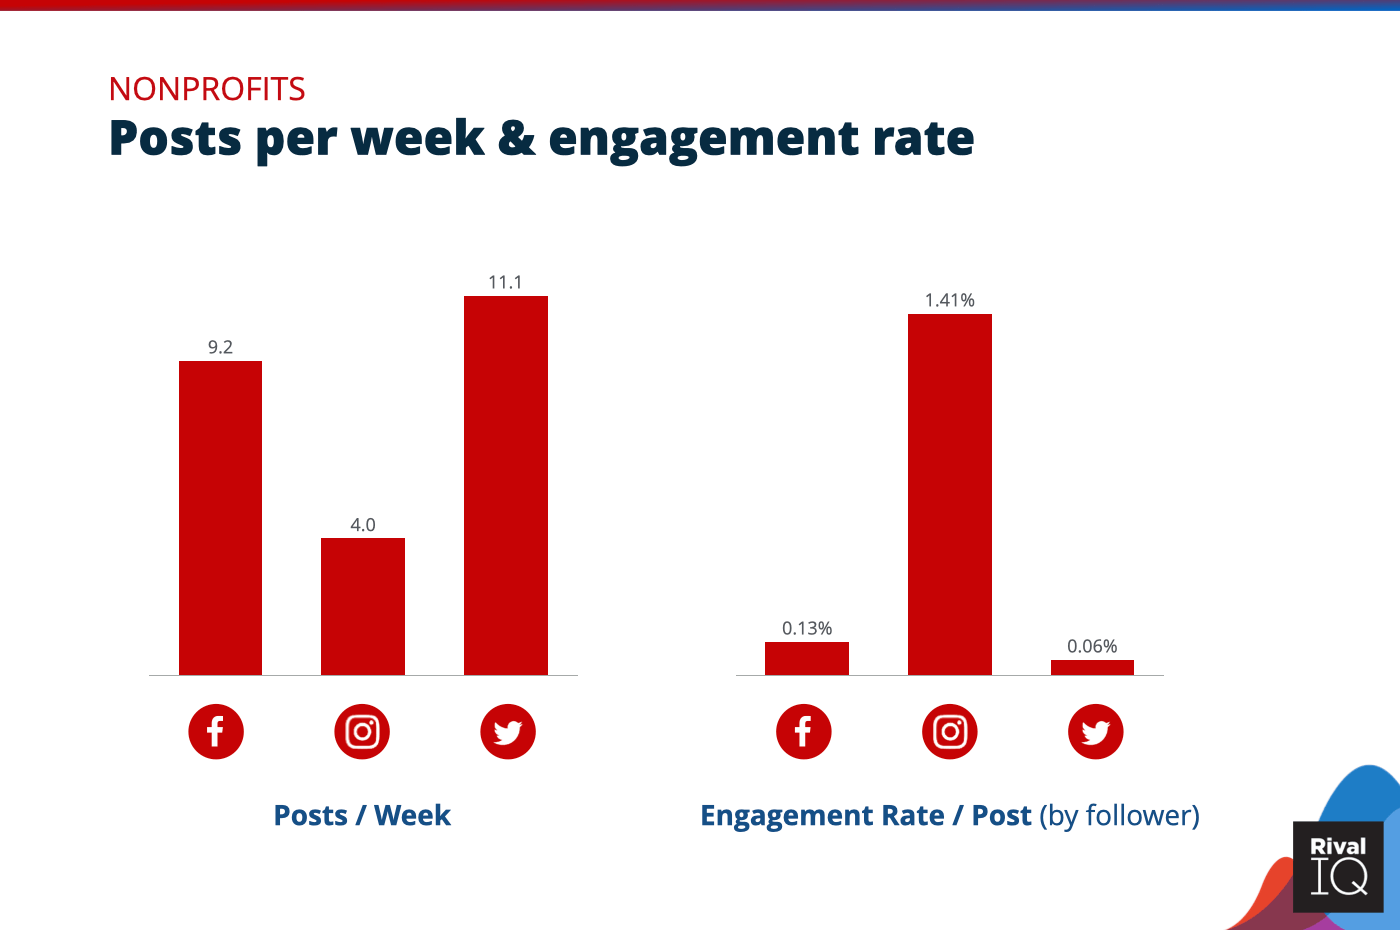 Chart of Posts per week and engagement rate per post across all channels, Nonprofits